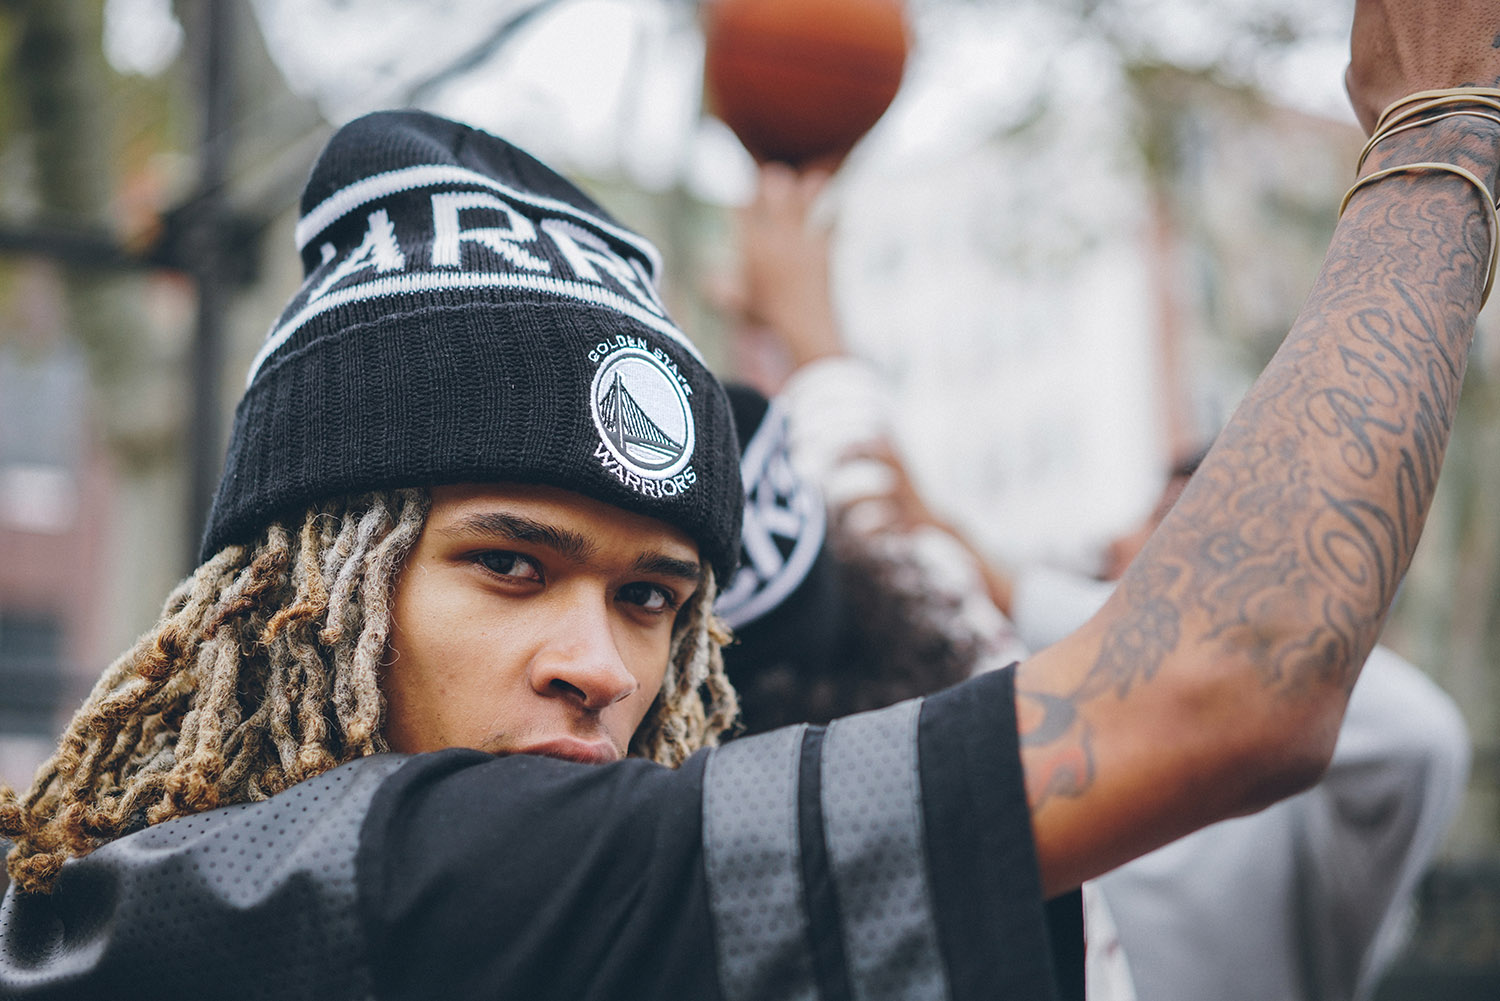 Mitchell & Ness Adds Its Own Flavor to NBA Headwear With a Champs Sports Exclusive